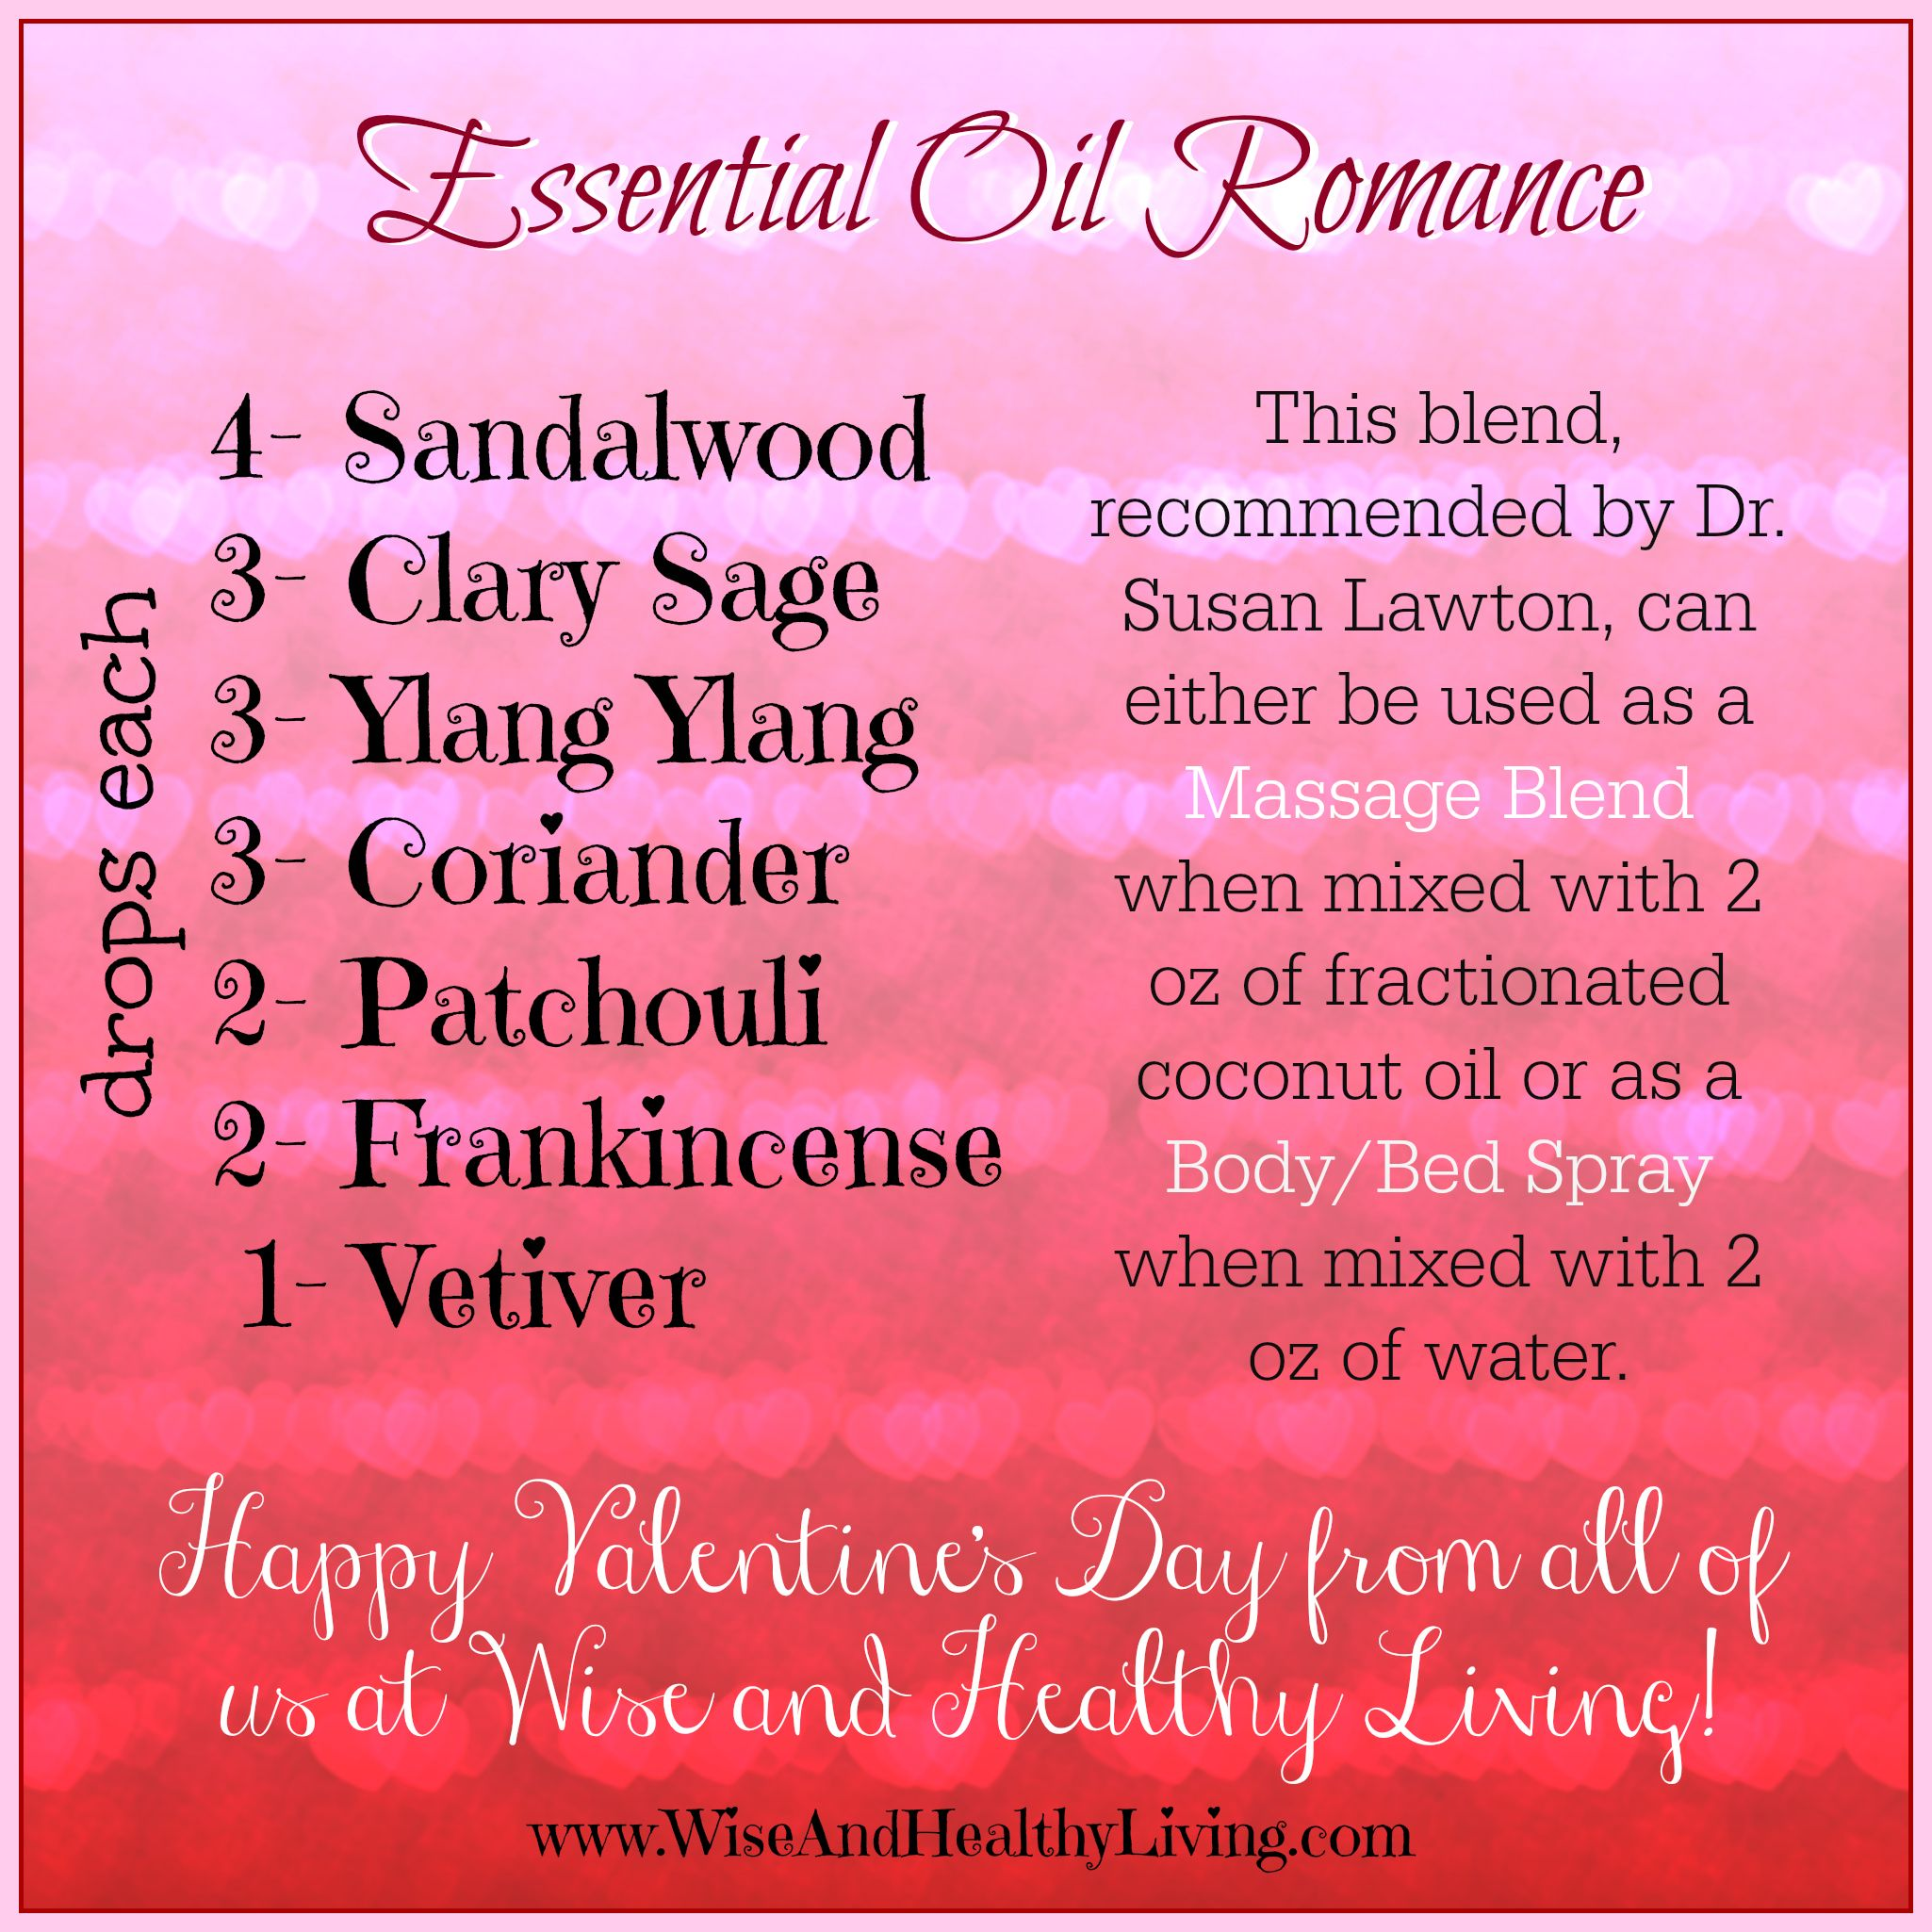 Mix Up A Little Love Chemistry This Valentine S Day